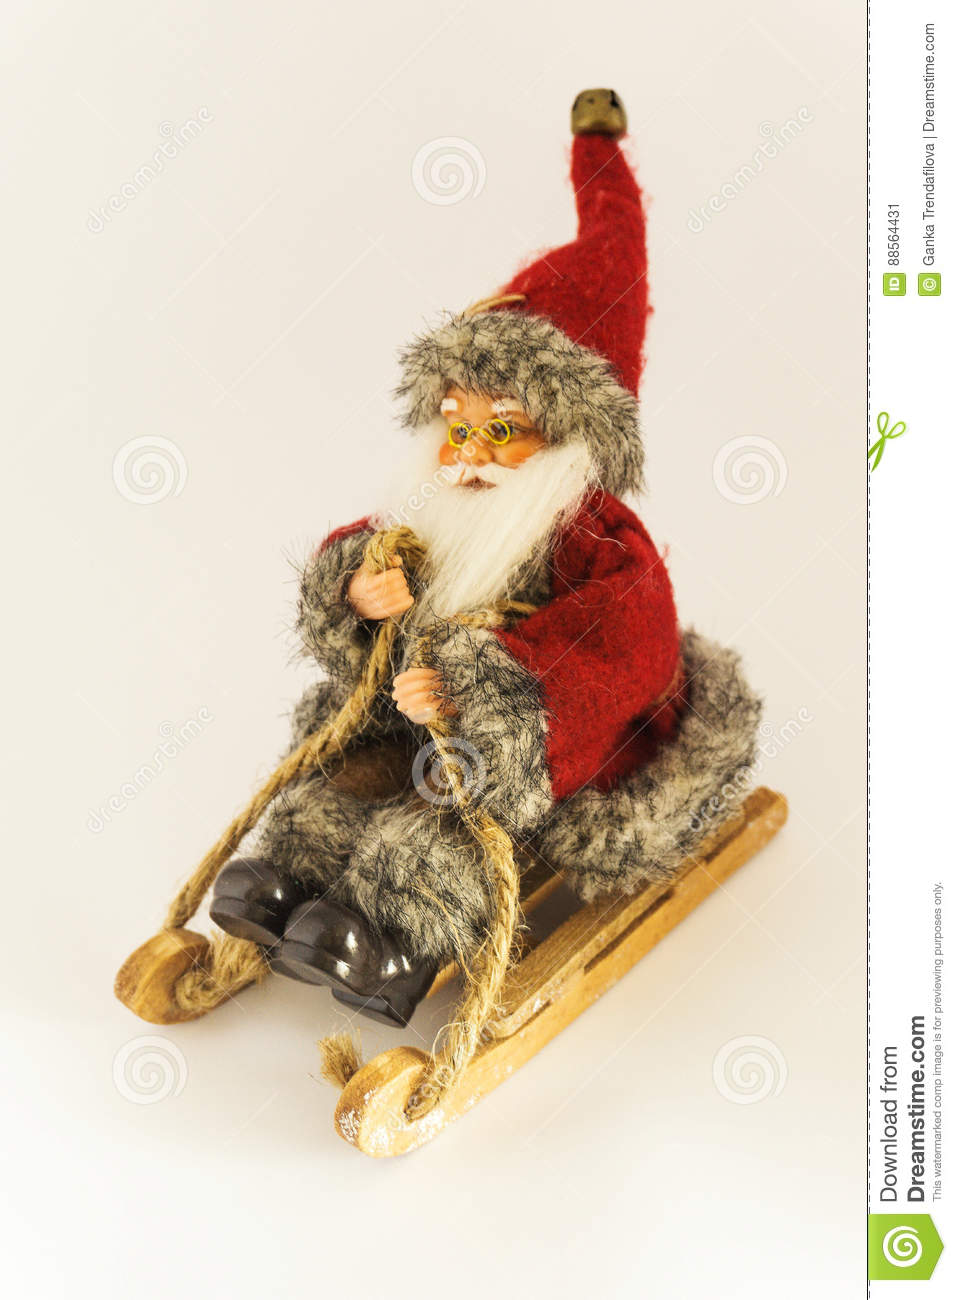 Merry Christmas And Happy New Year Model Santa Claus Christmas